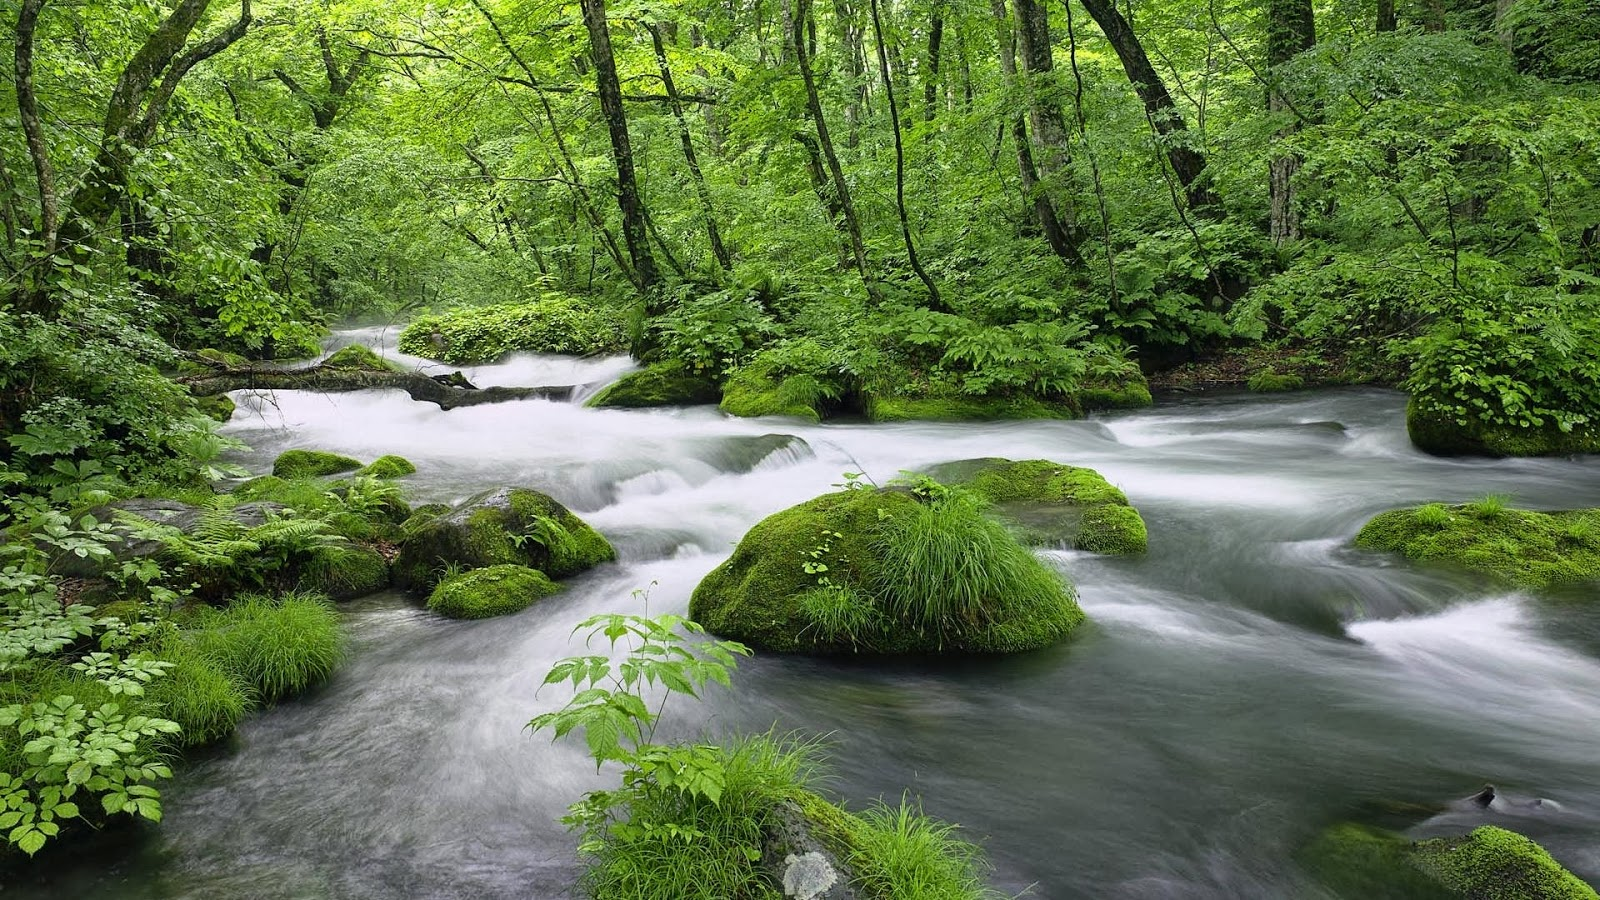 Free download Full HD Size Nature Wallpapers Downloads Full HD High